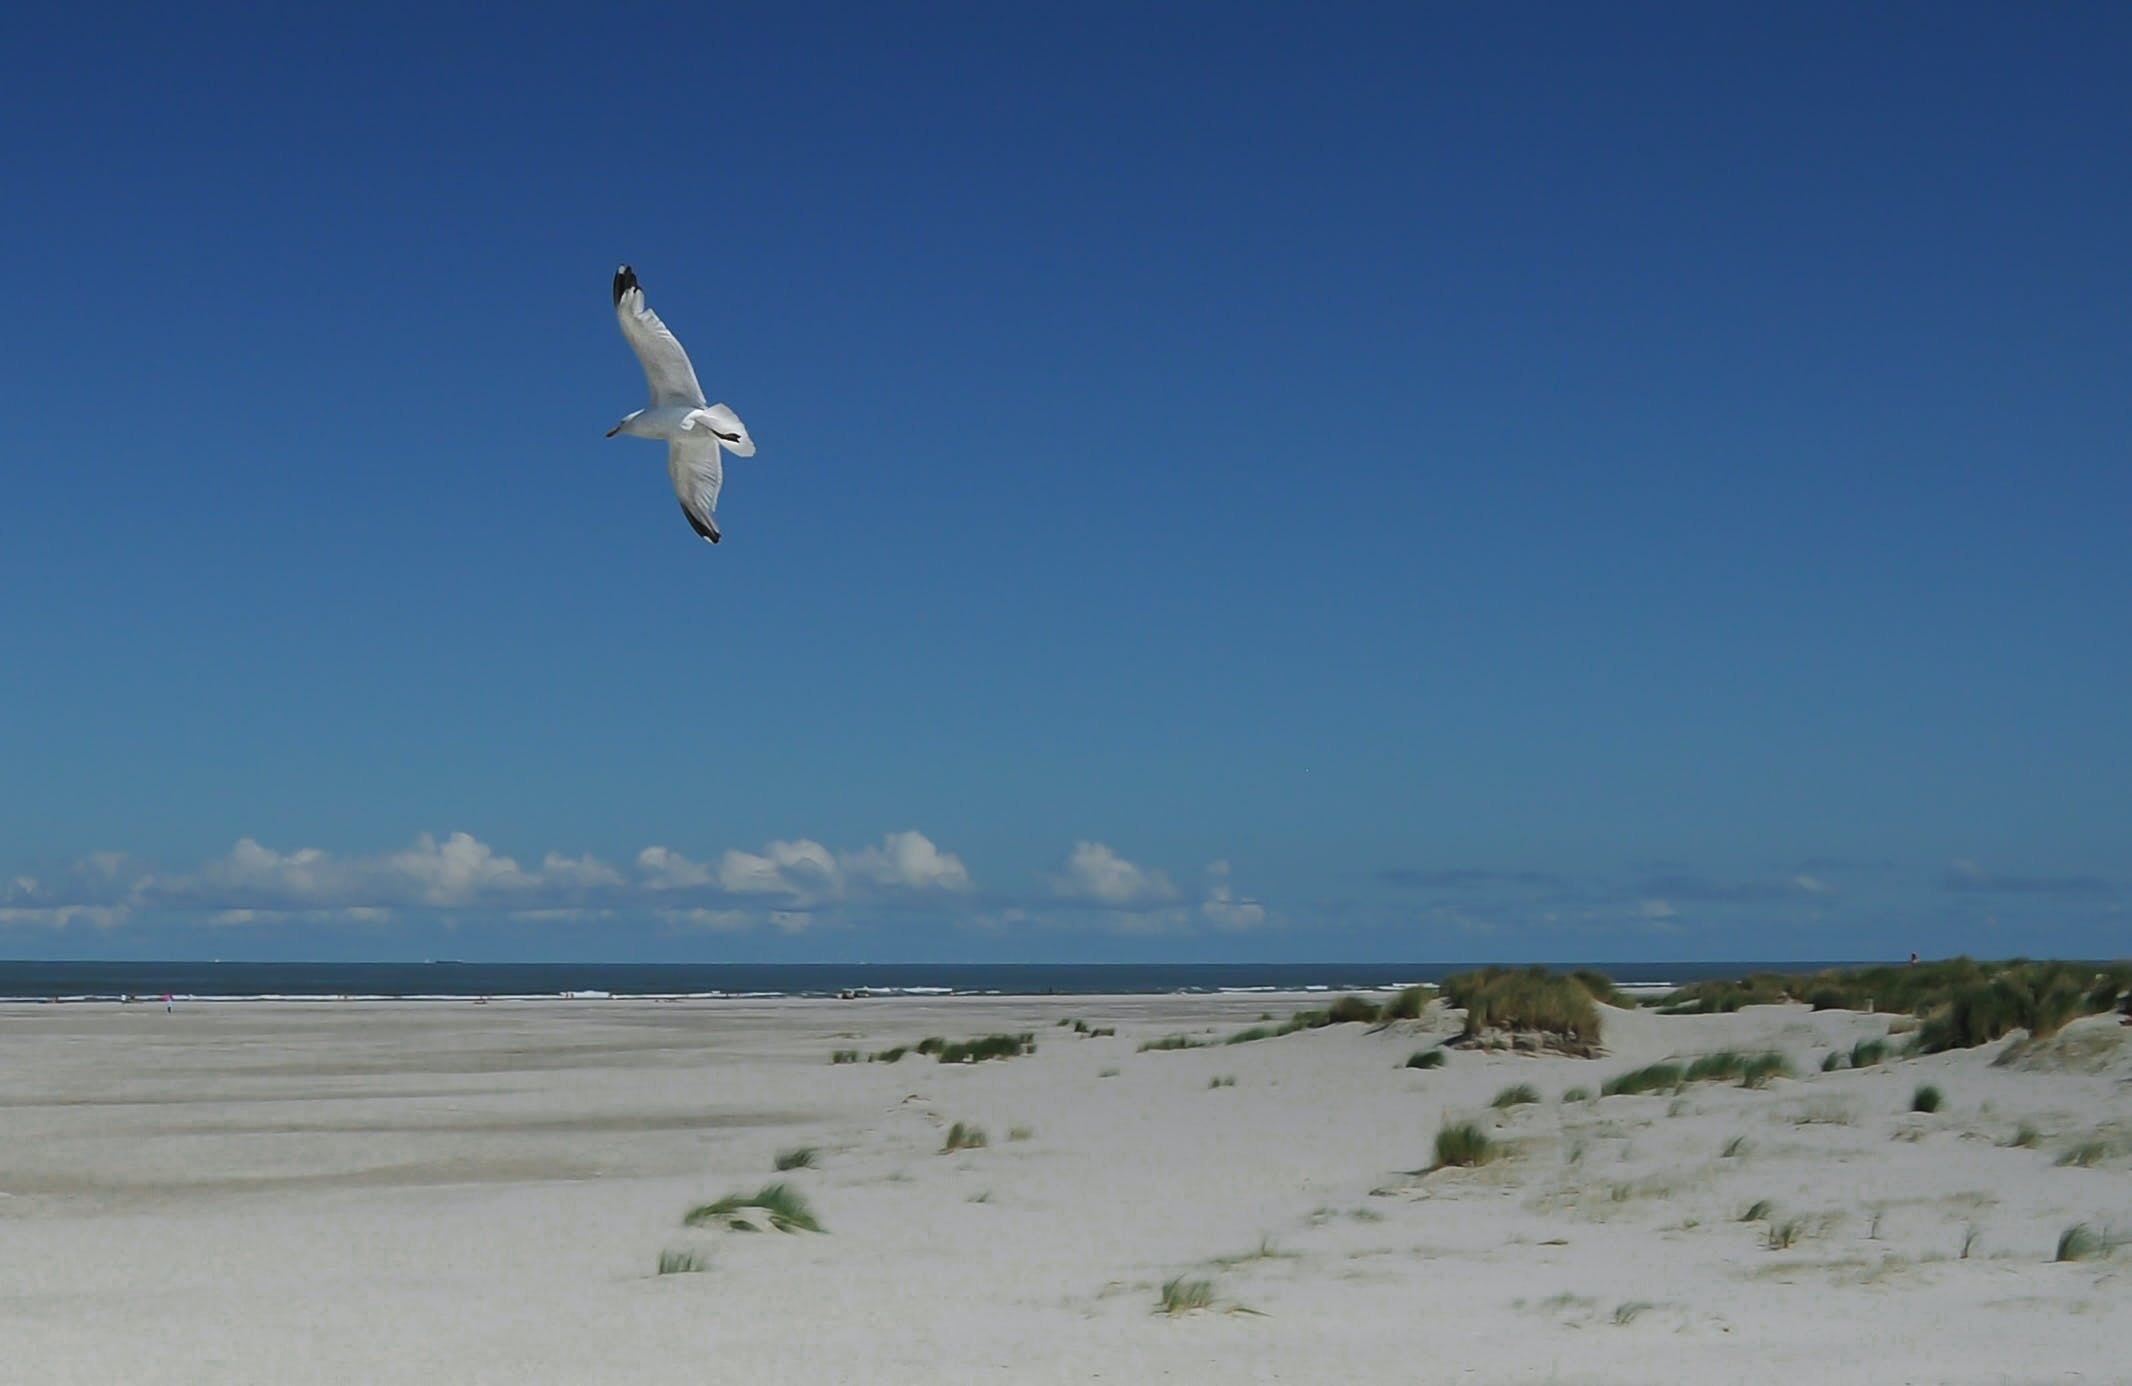 Free stock photo of bird, flying, beach, seagull